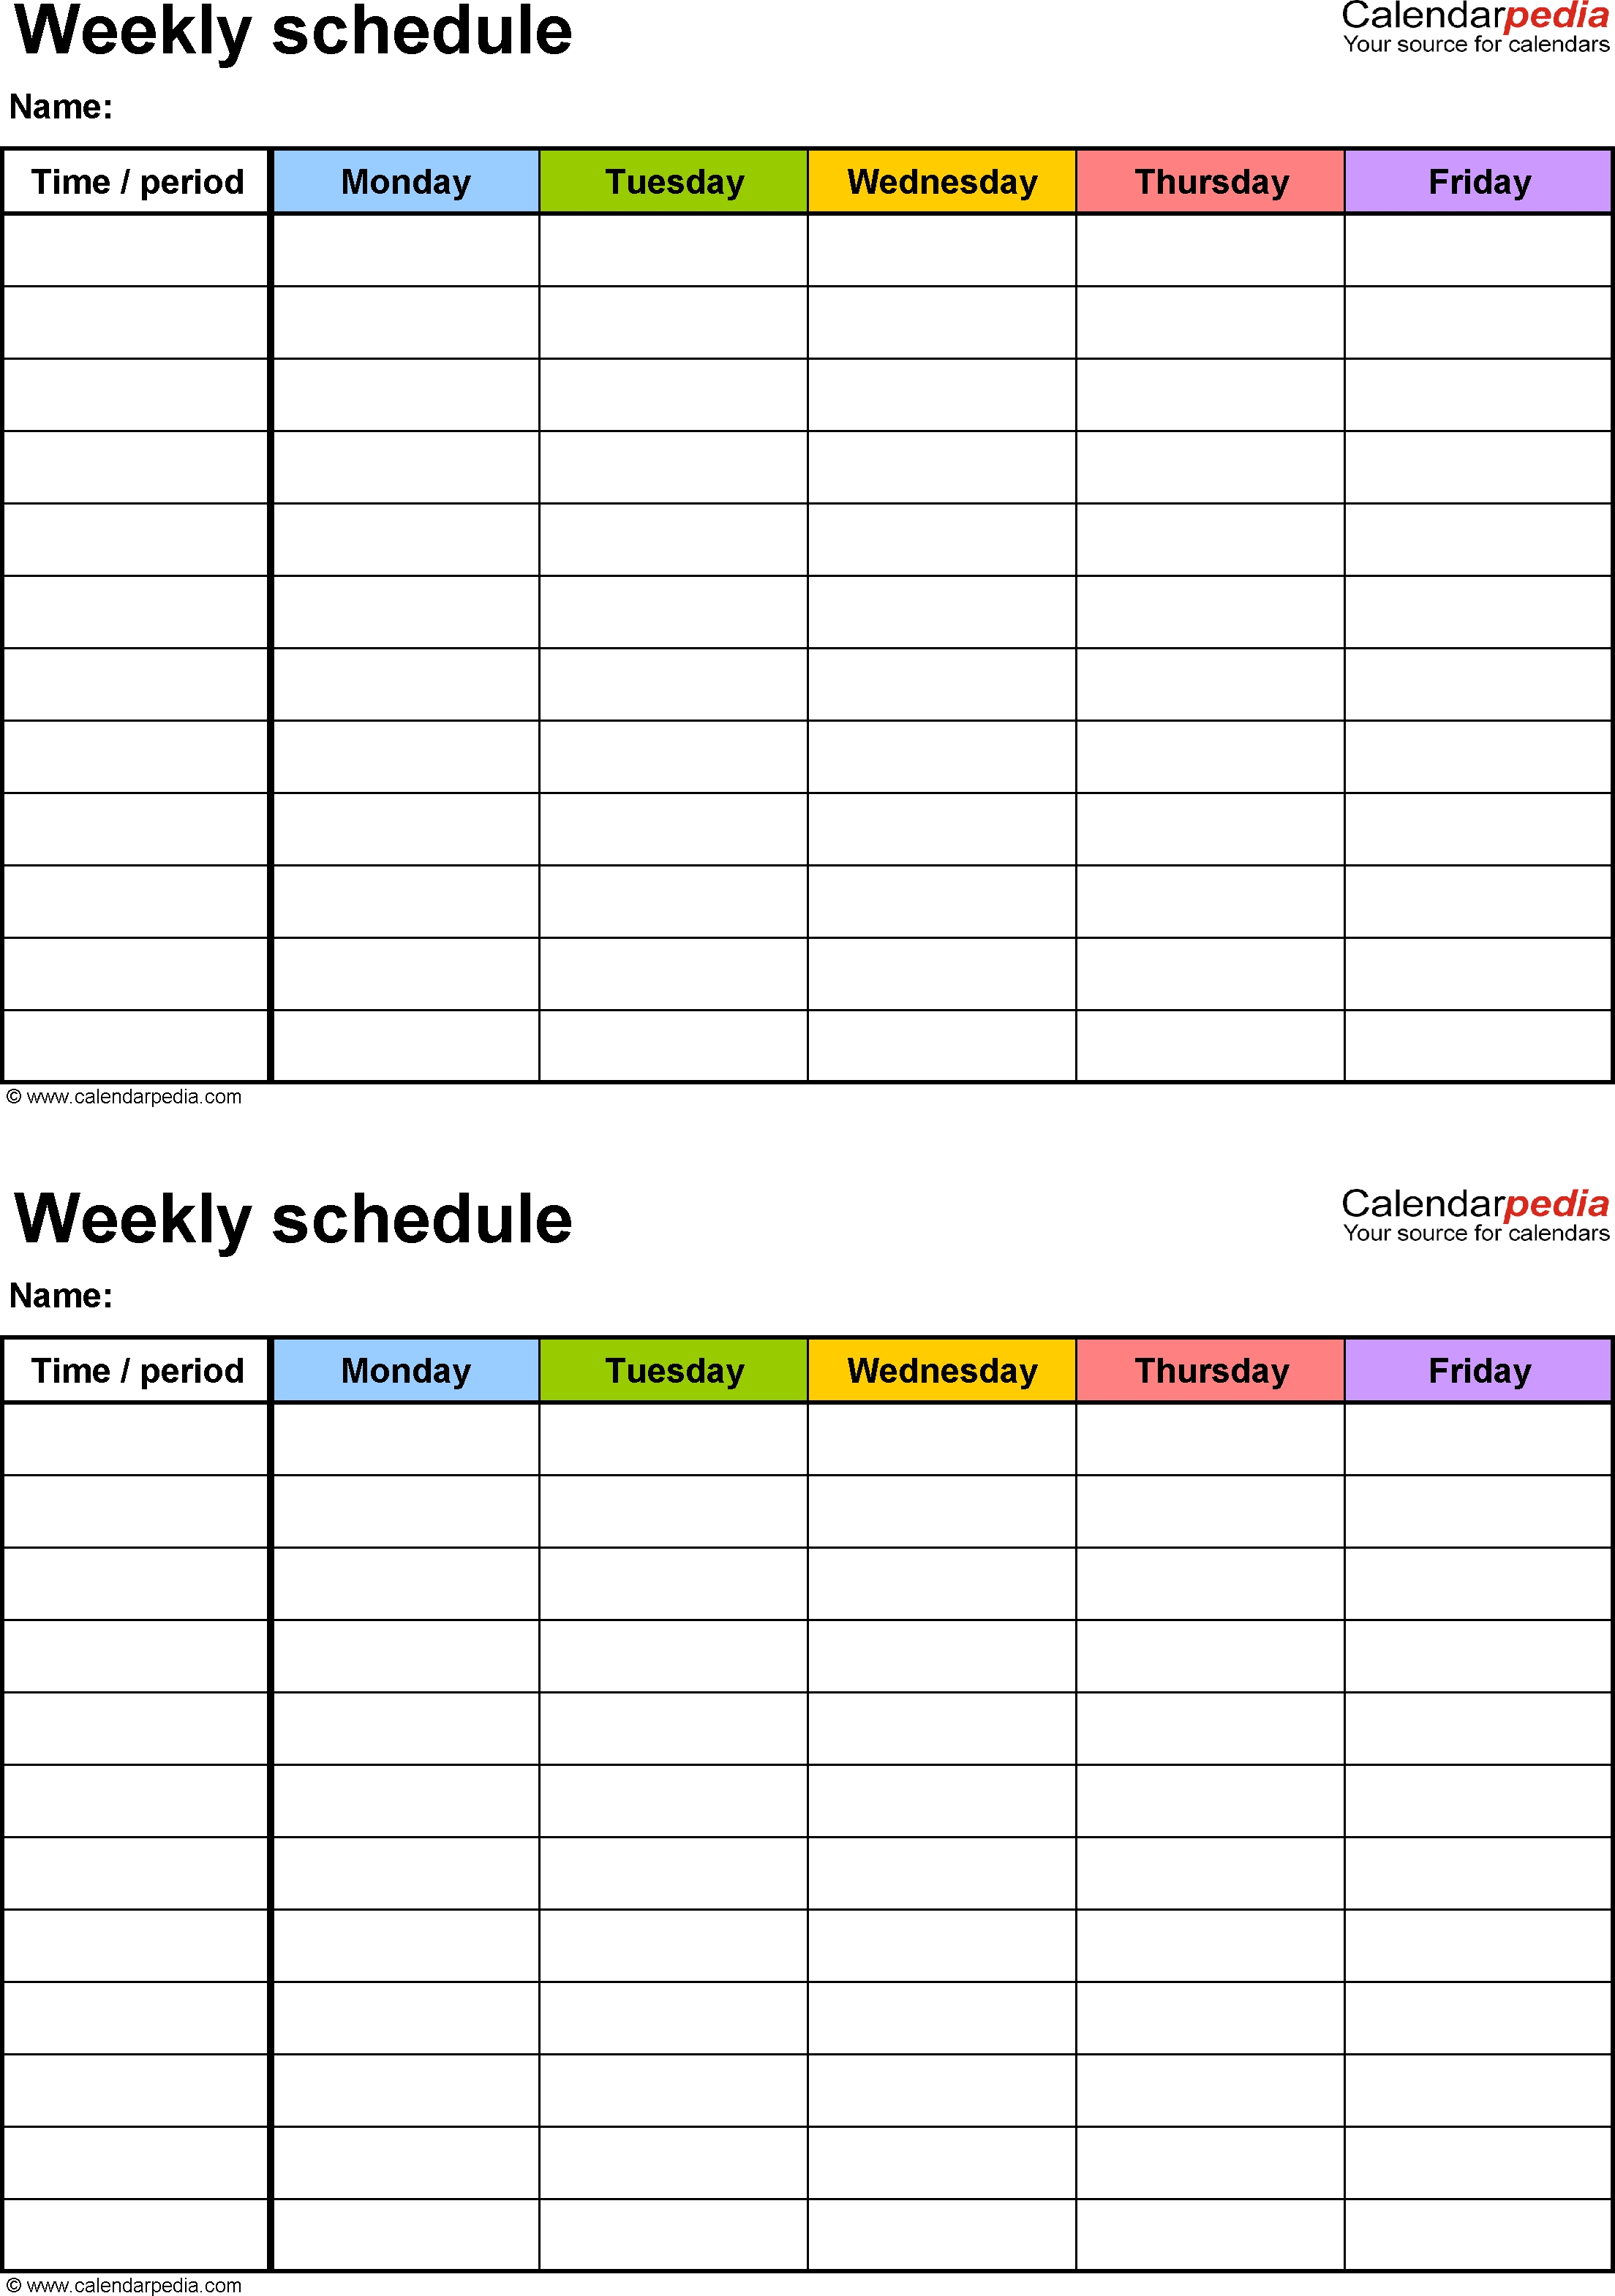 Free Weekly Schedule Templates For Excel - 18 Templates-Weekly Calendar 2020 Template Students 7 Days A Week